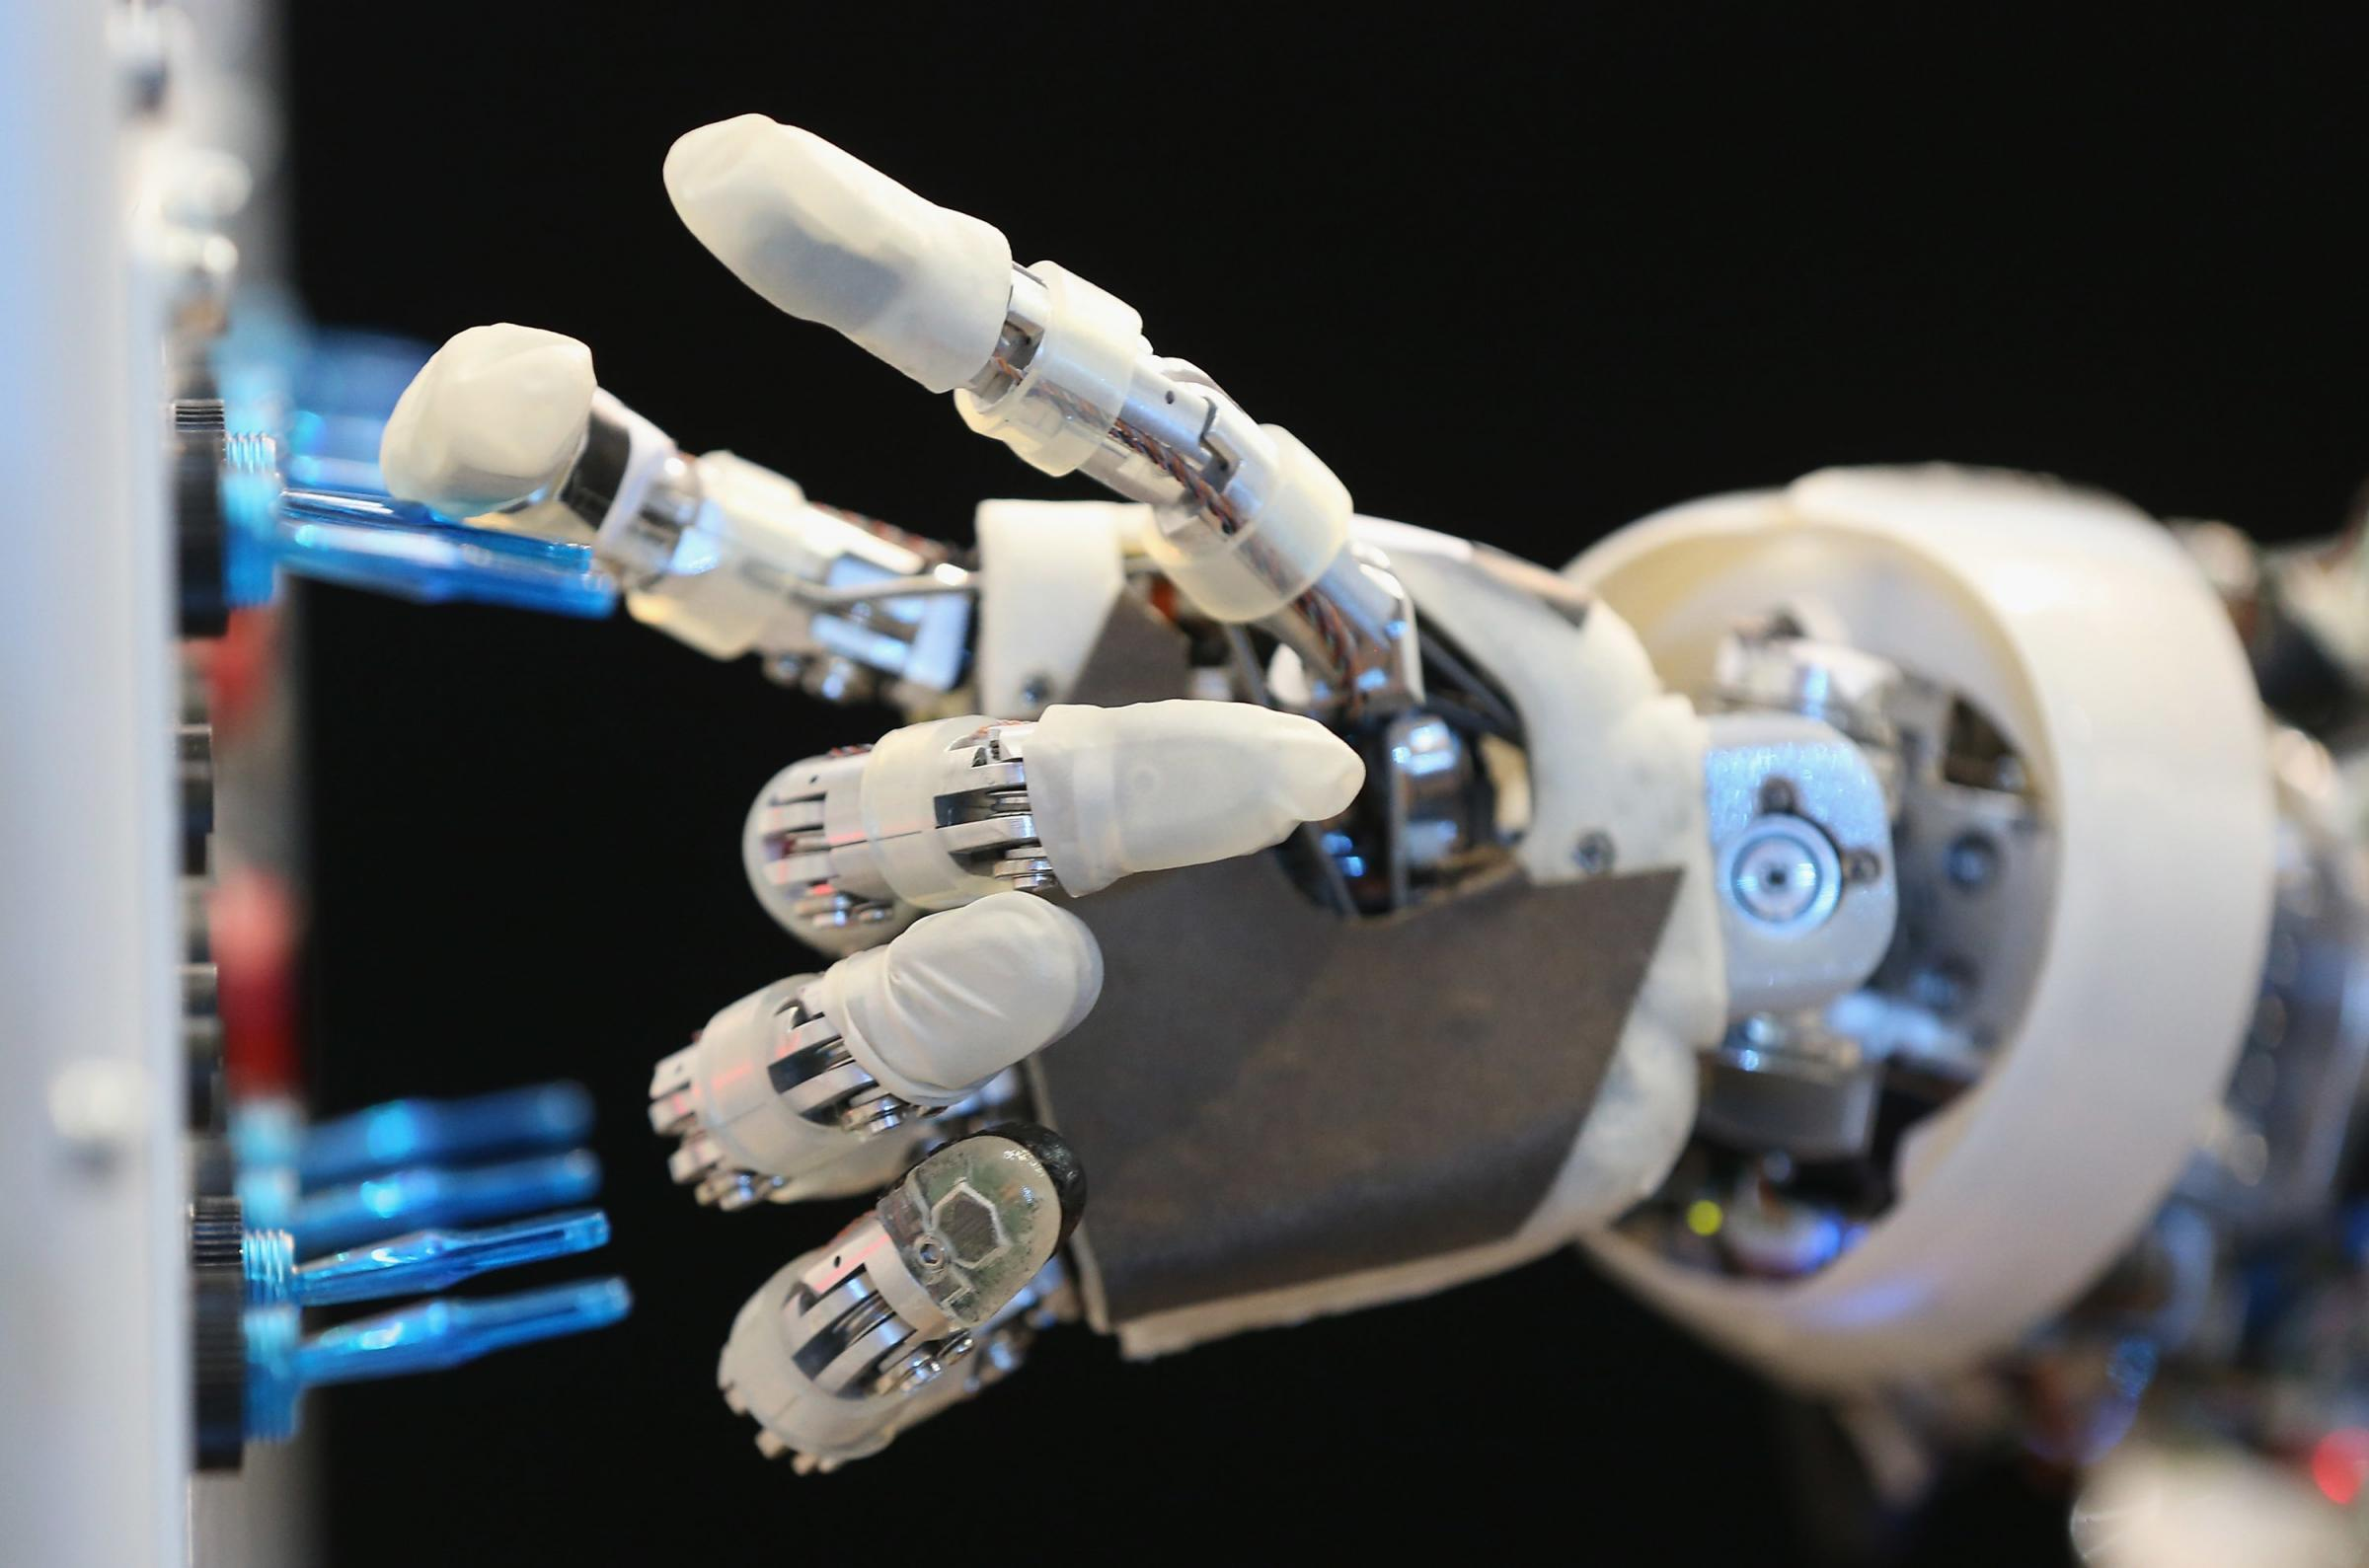 Artificial intelligence, robotics and automation could herald a utopia for humankind